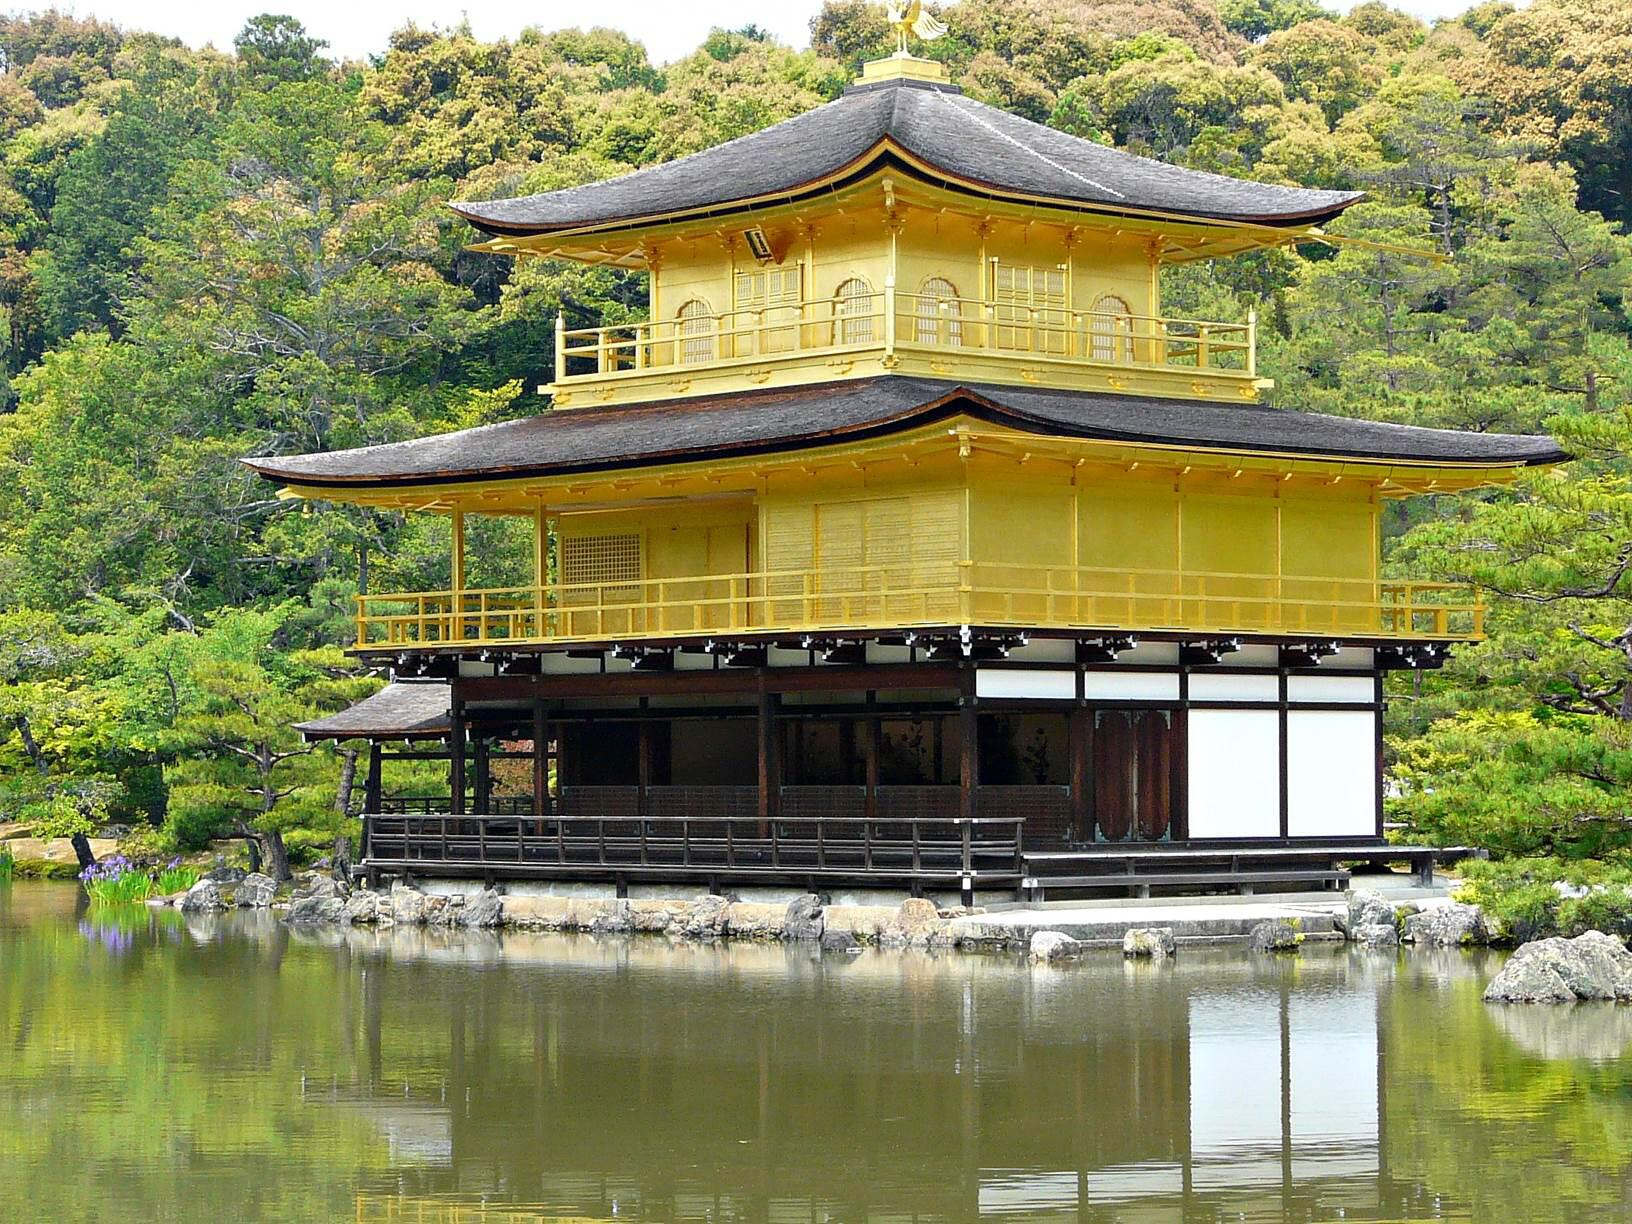 Bild zu Tempel in Japan